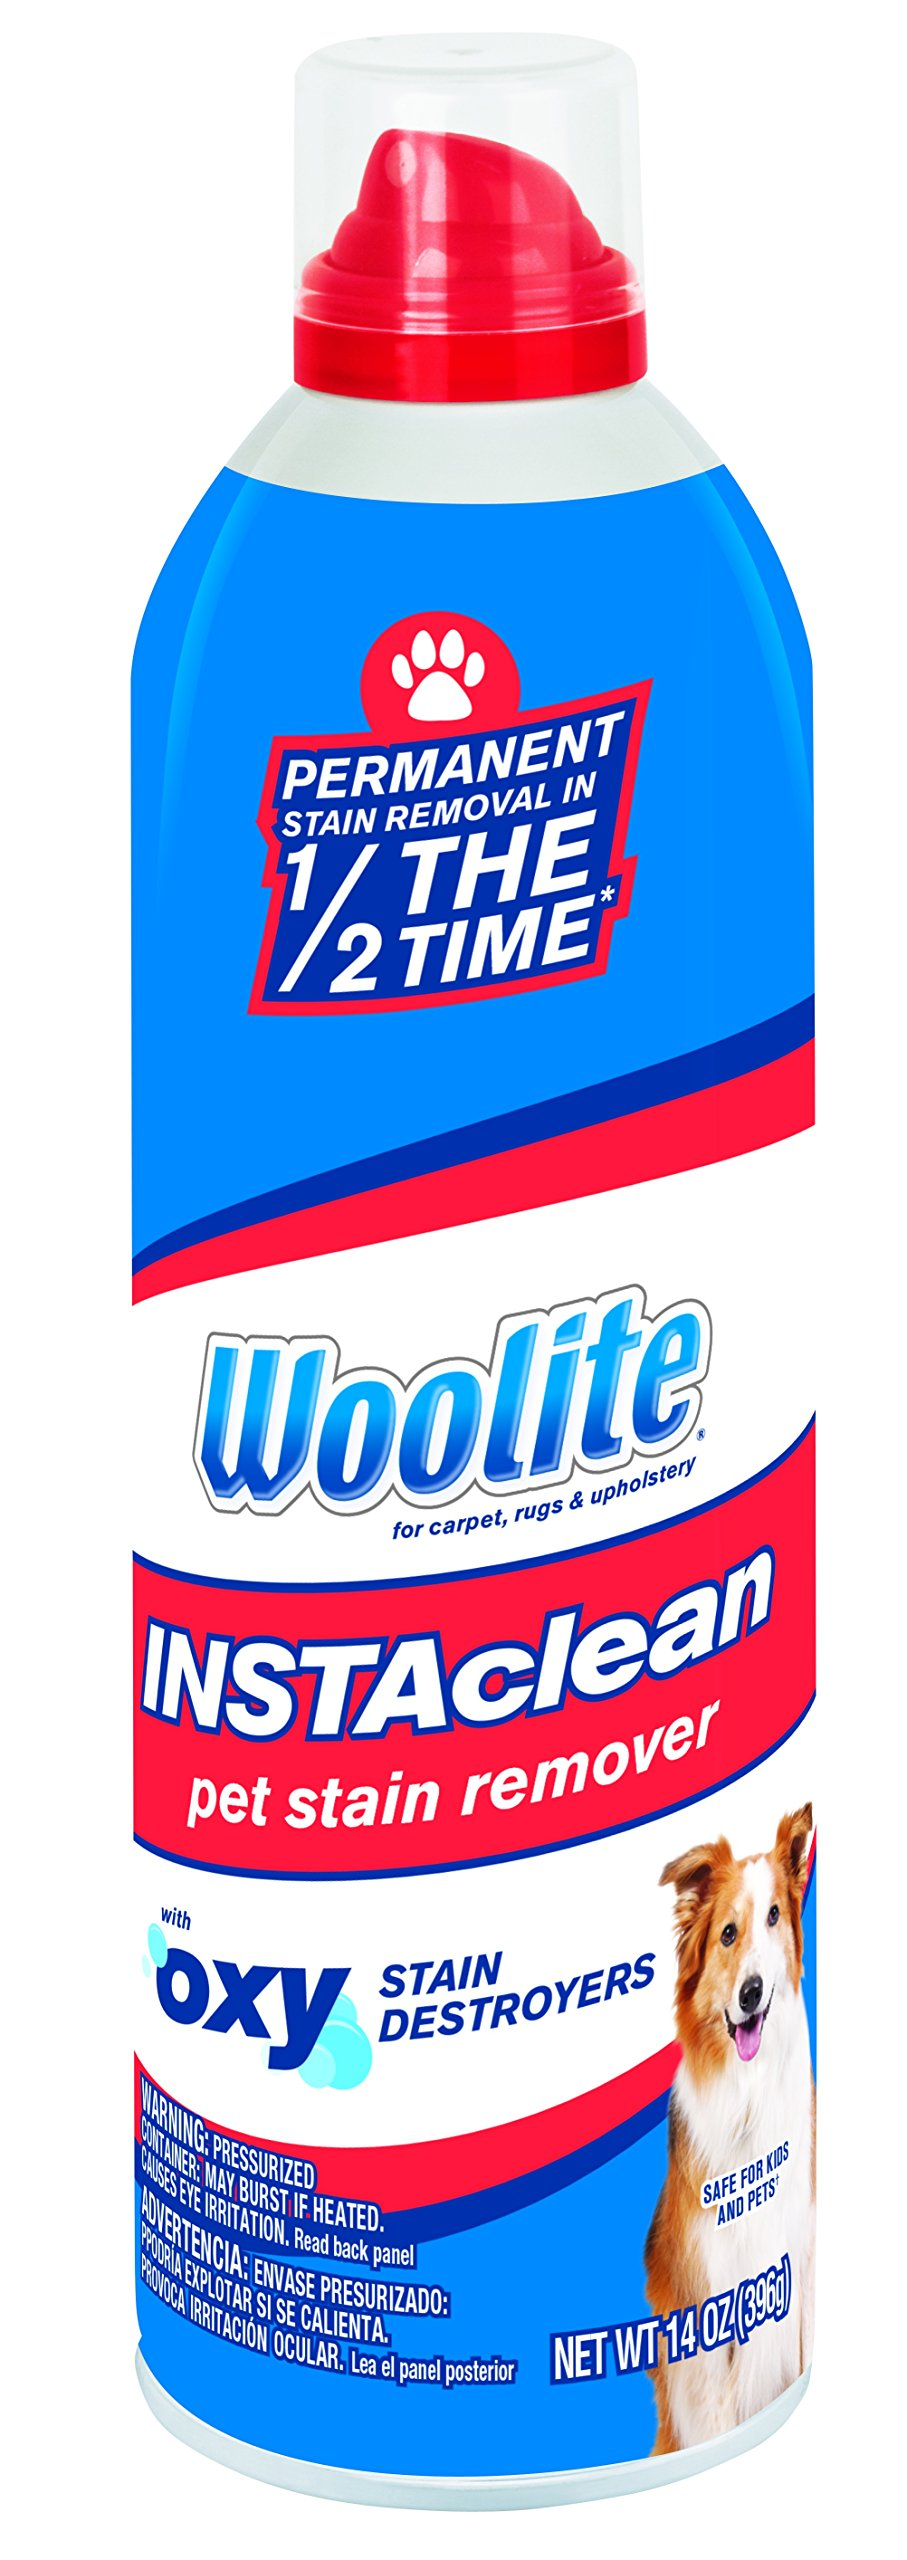 Bissell Woolite INSTAclean Pet Stain Remover, 1783